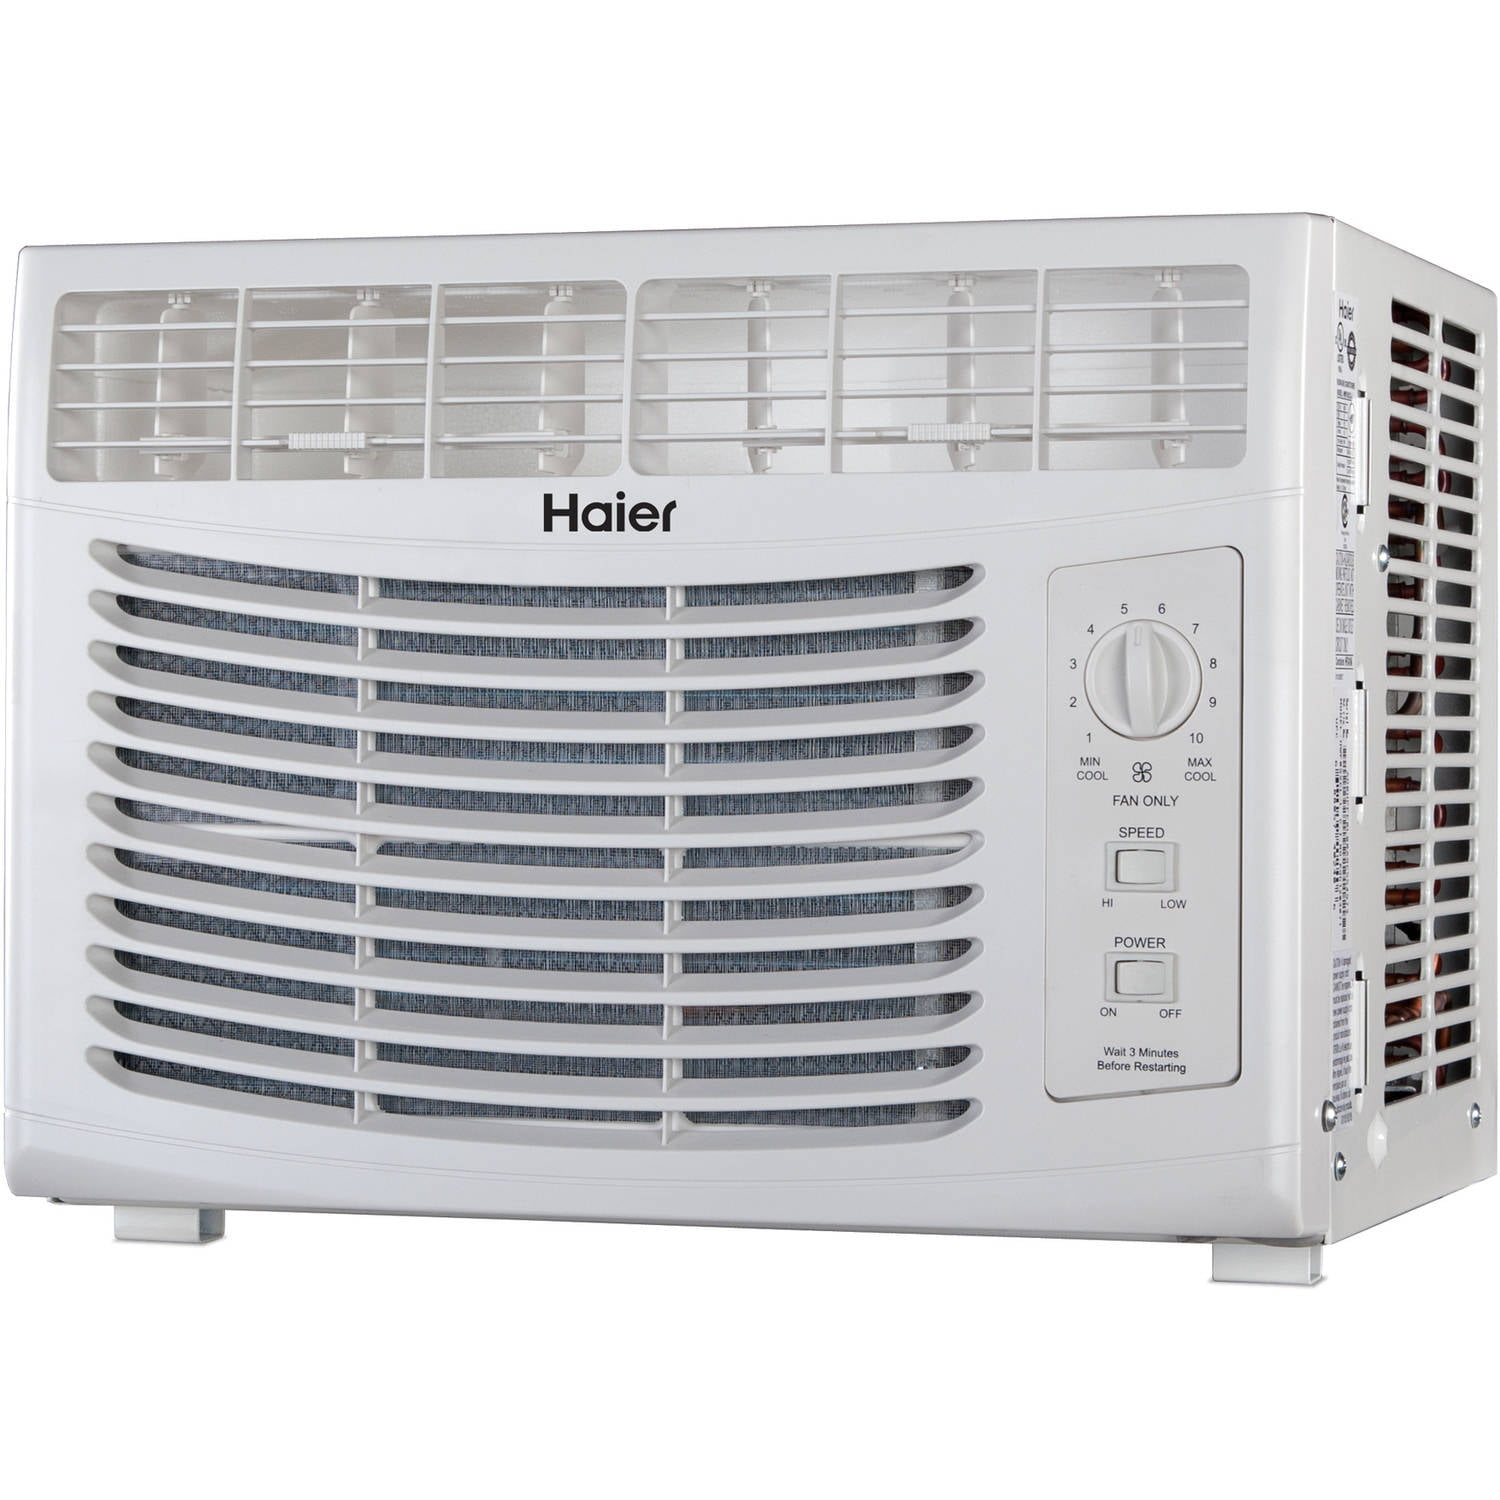 f53c98e1 4eb8 412a 844c 7ab4ac741e3e_1.a91fdf9e60d6ae857bbdb5220bc342c5 haier 5,000 btu window air conditioner, 115v, hwf05xcr l walmart com  at aneh.co